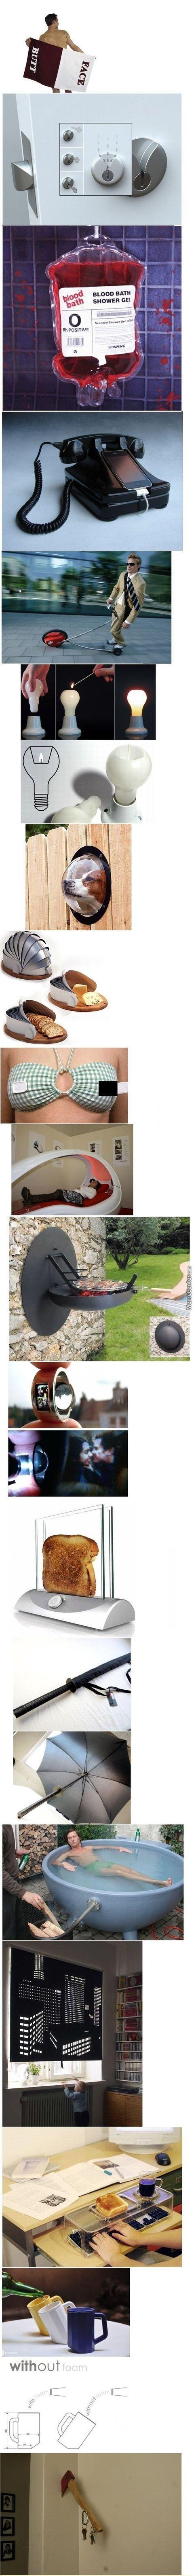 More Great Inventions